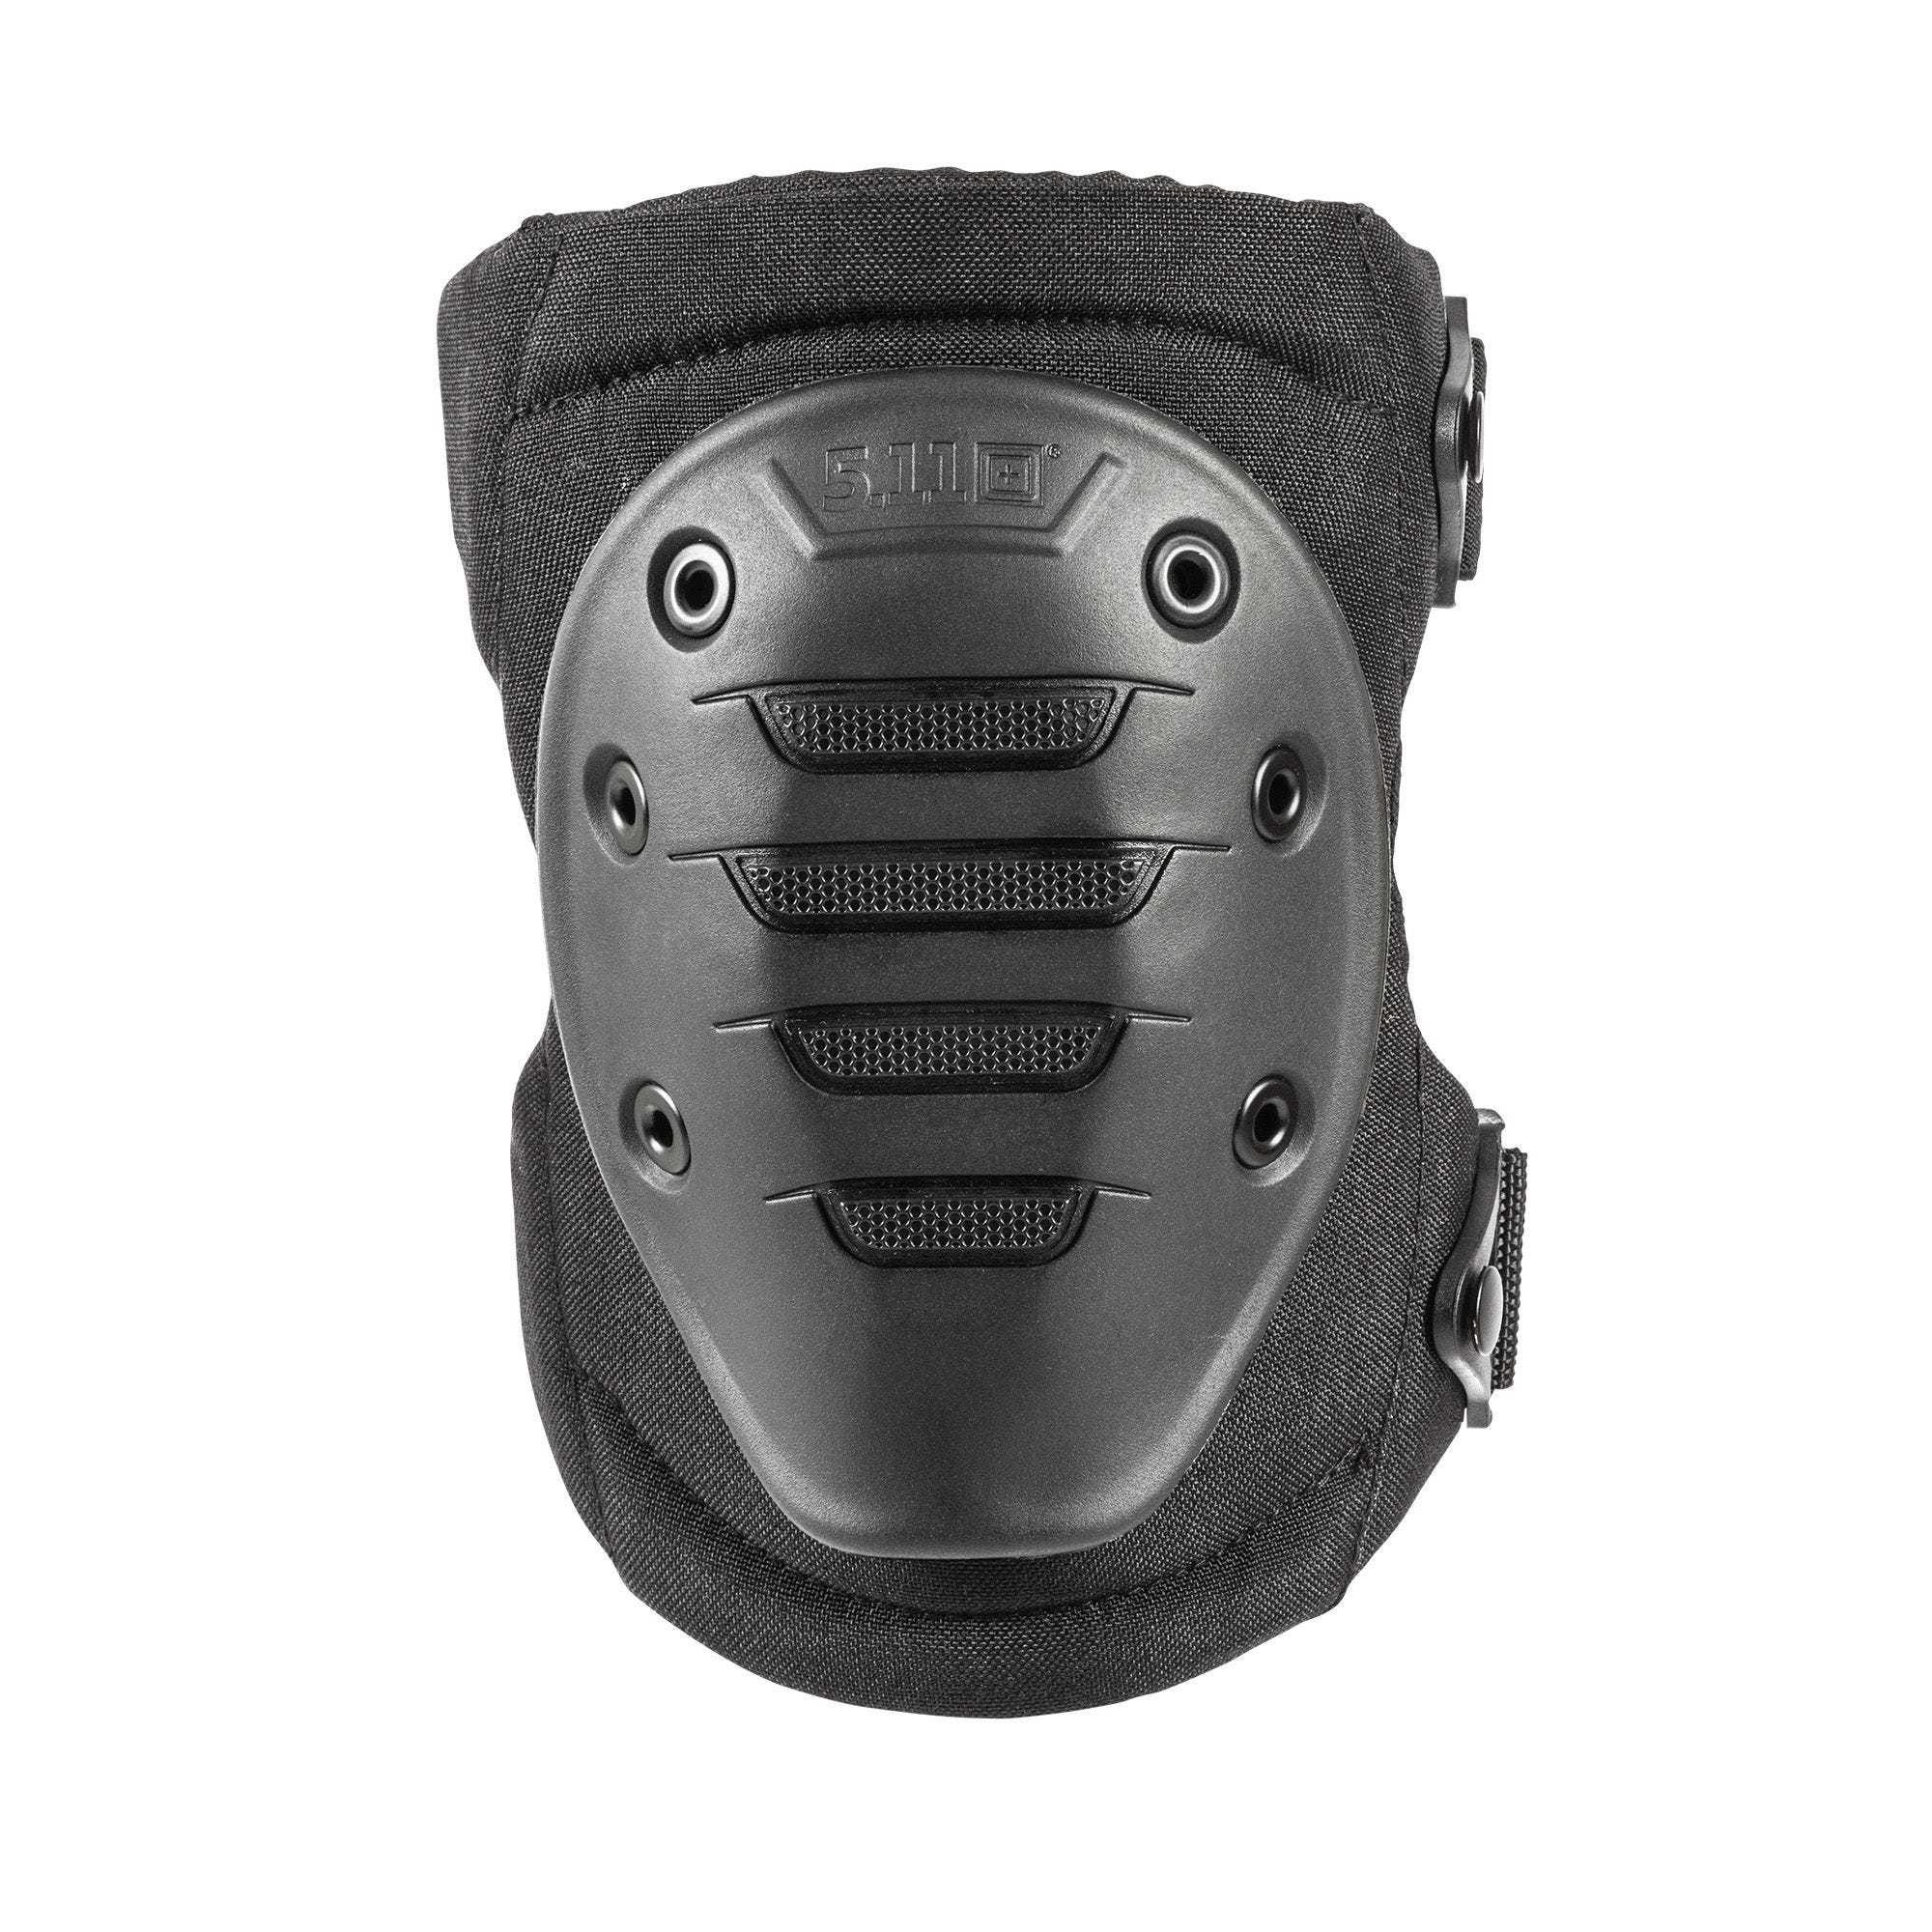 EXO.K1 KNEE PAD – Black